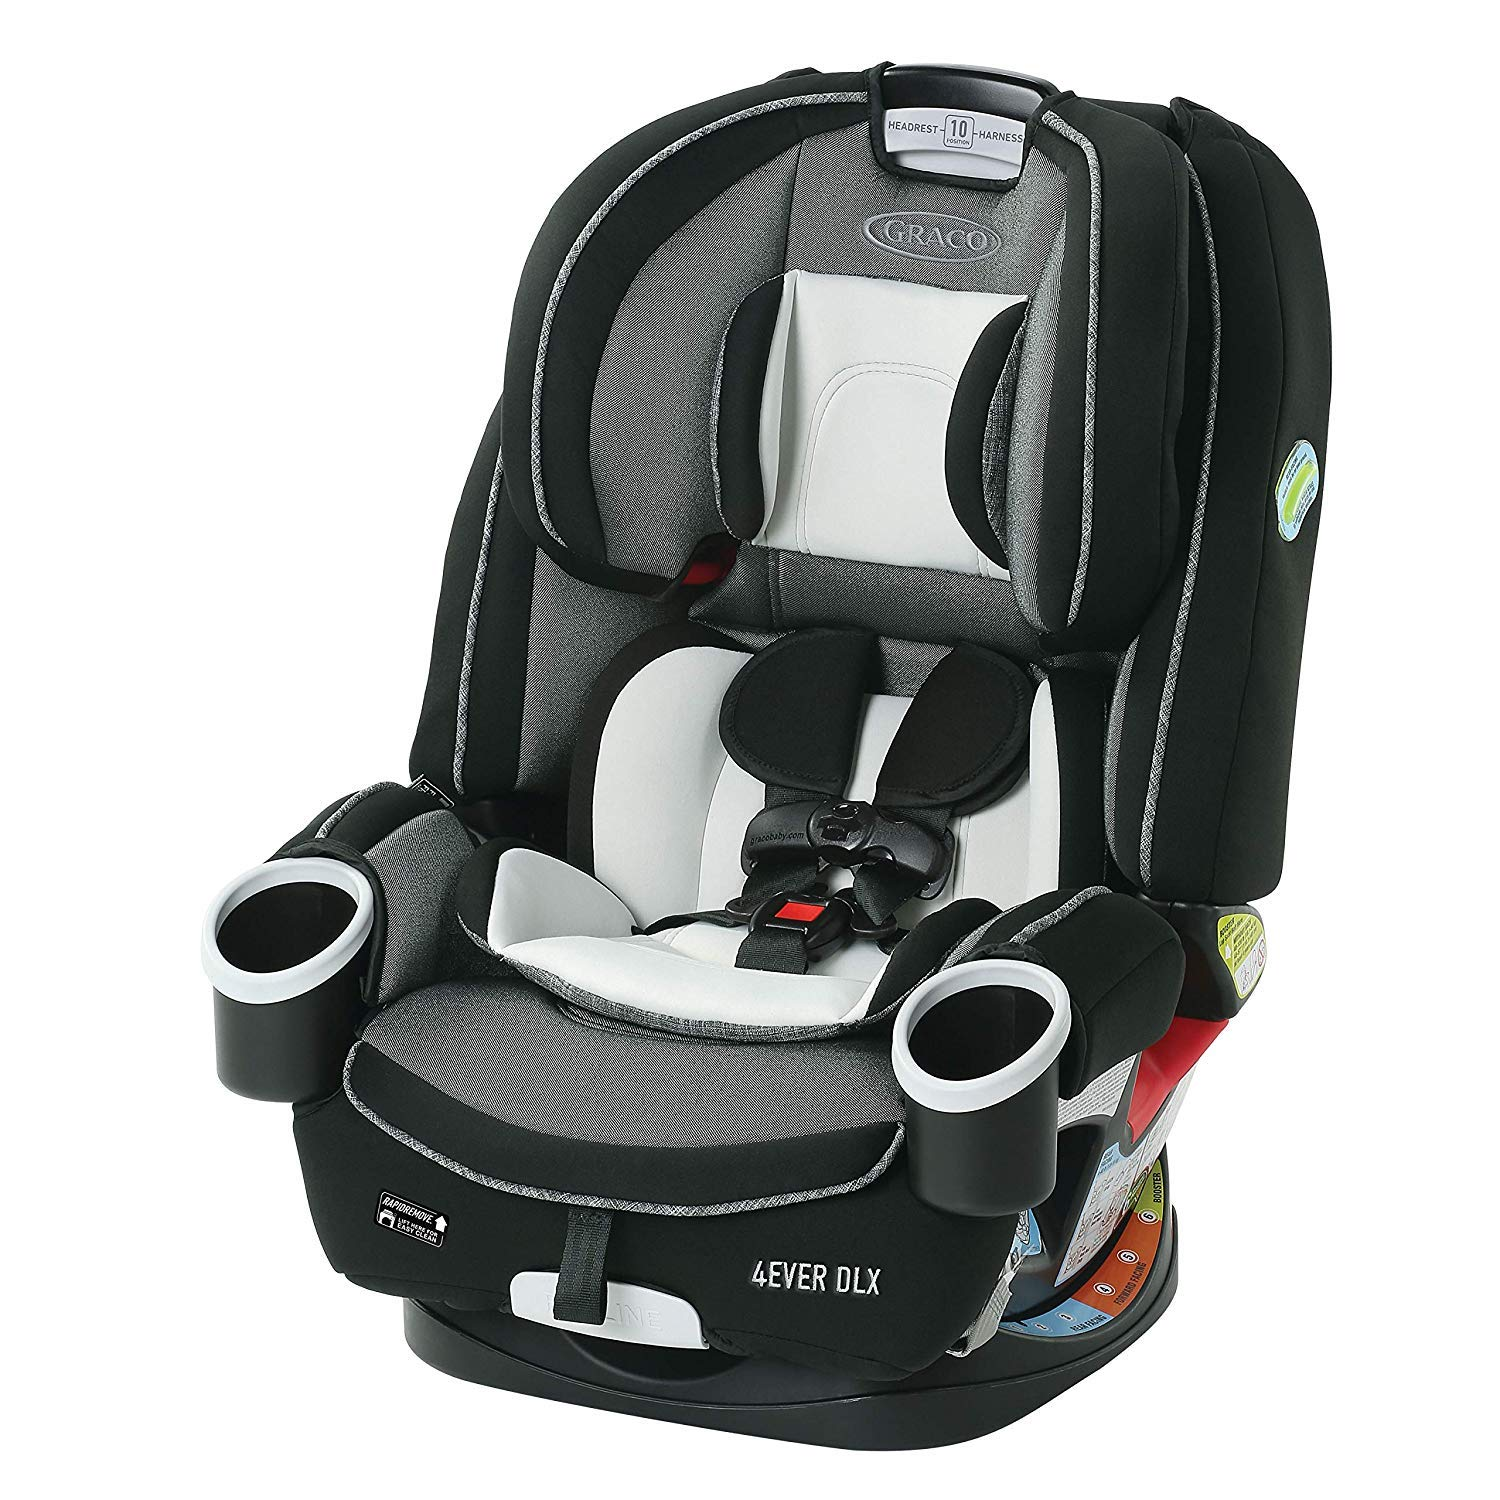 GRACO 4Ever DLX Fairmont